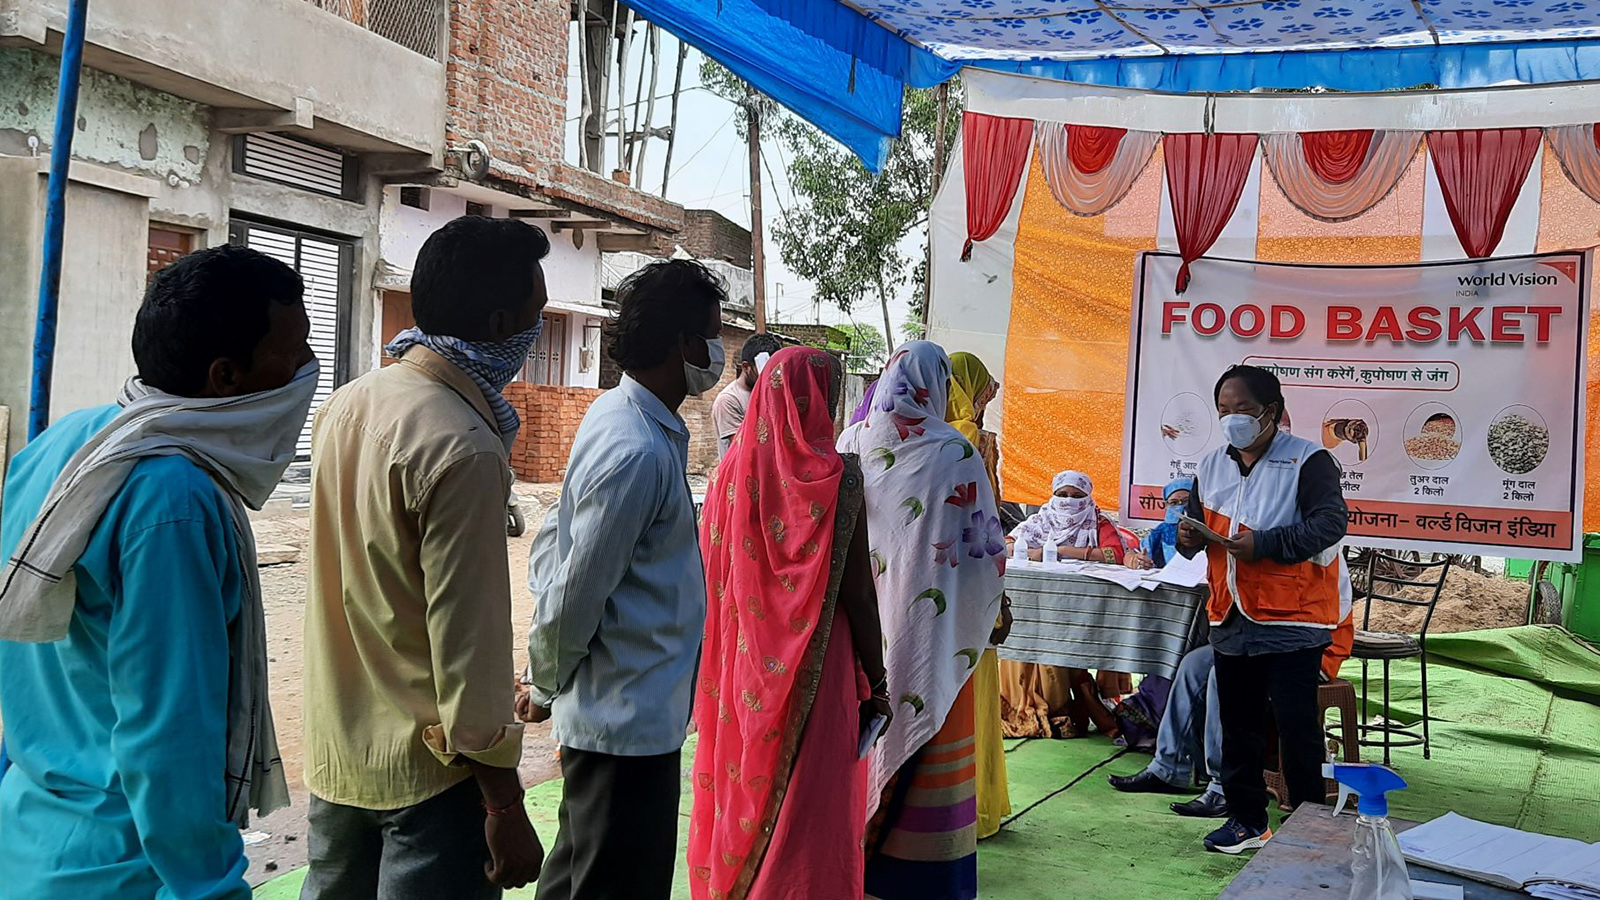 World Vision Food Basket Program, India.